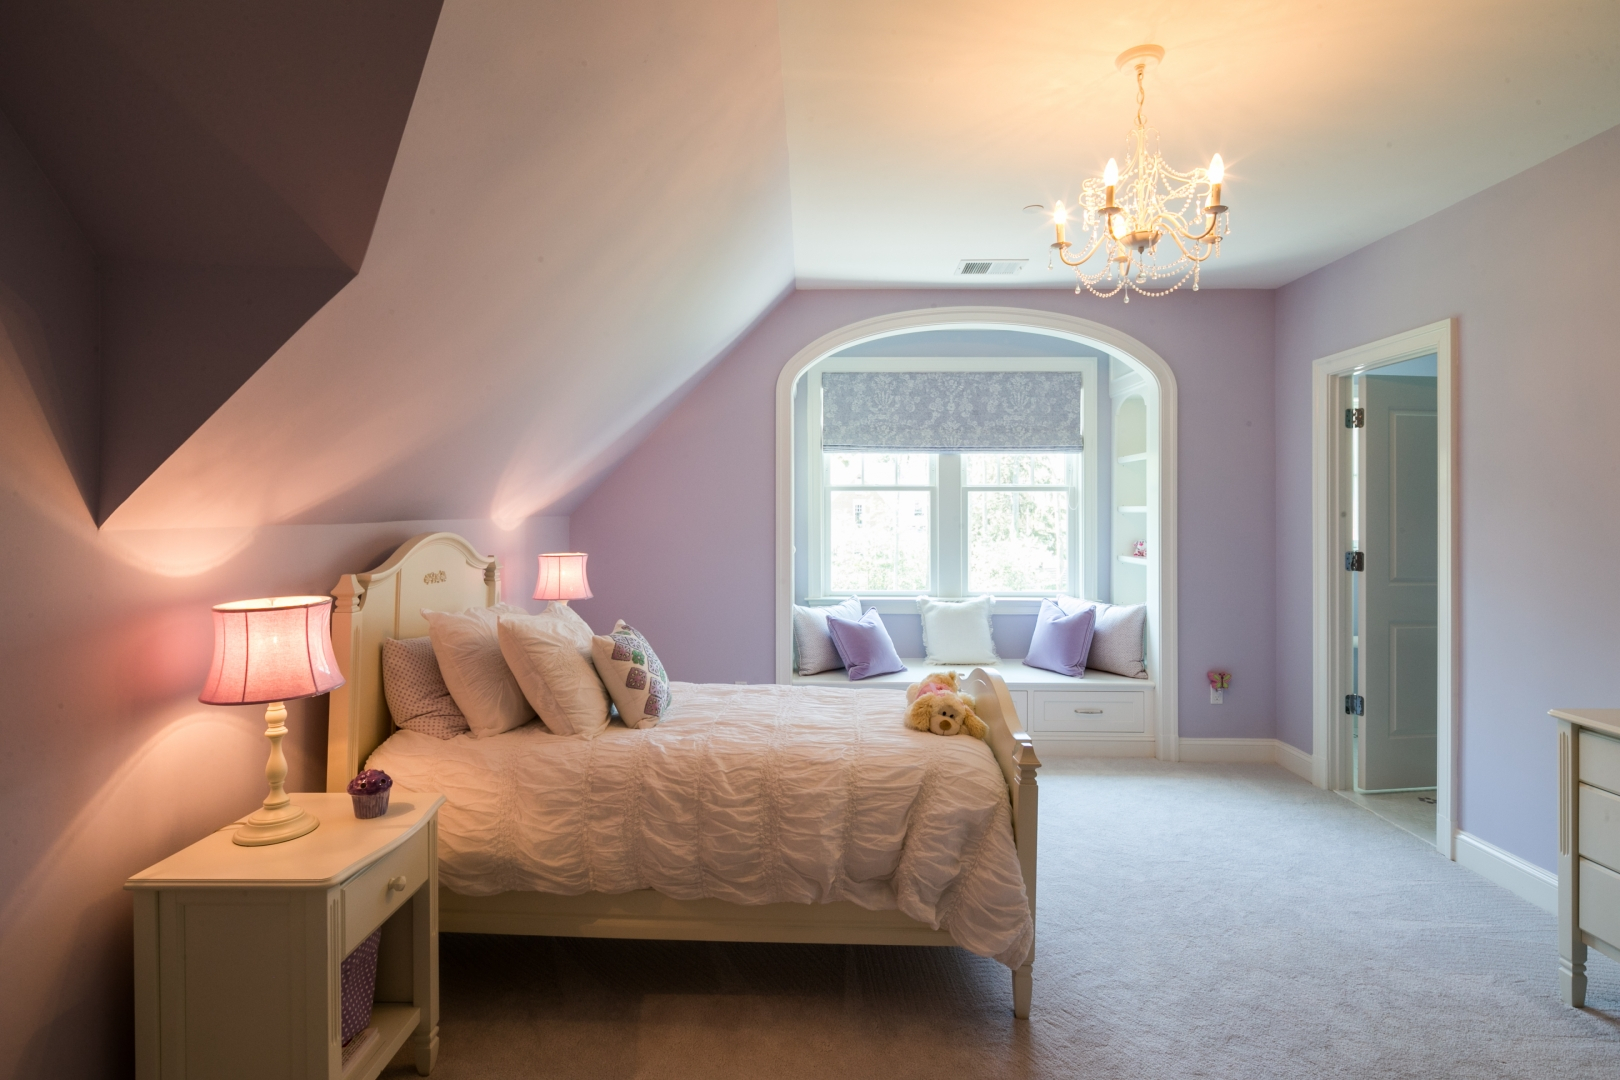 Top 5 Colors For A Seriously Soothing Bedroom Sandy Spring with sizing 1620 X 1080